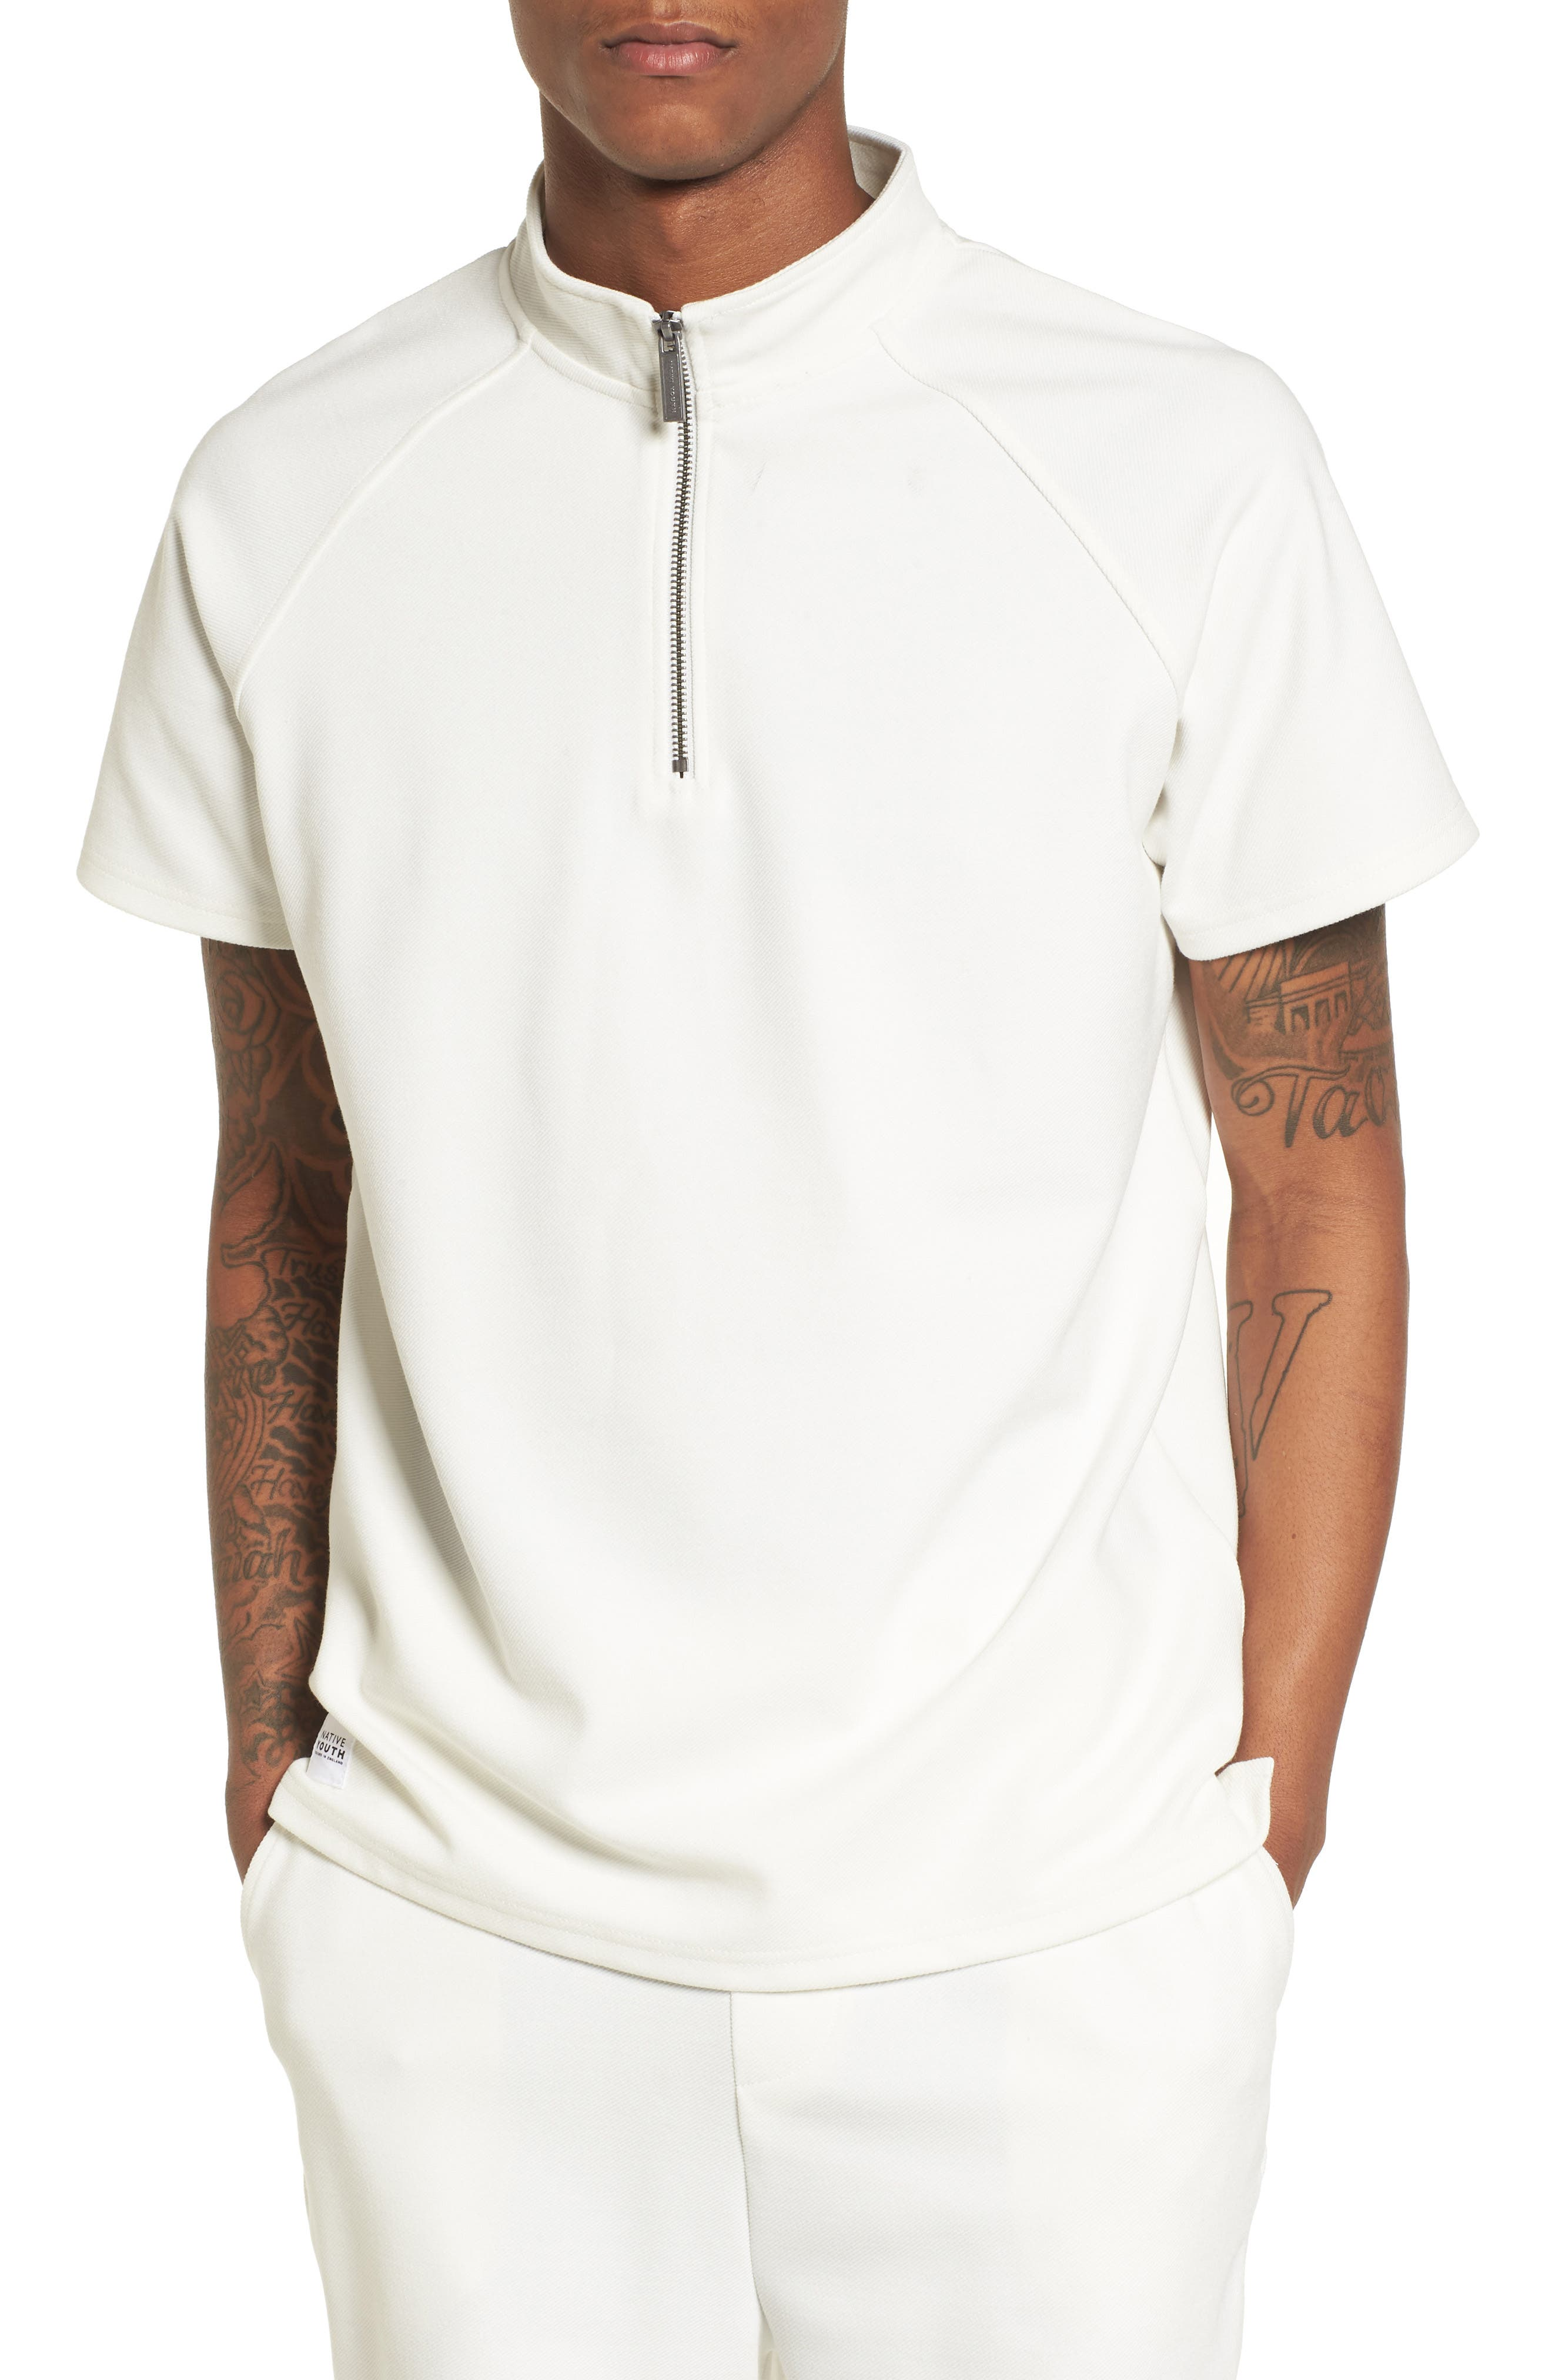 Storm Polo,                         Main,                         color, White